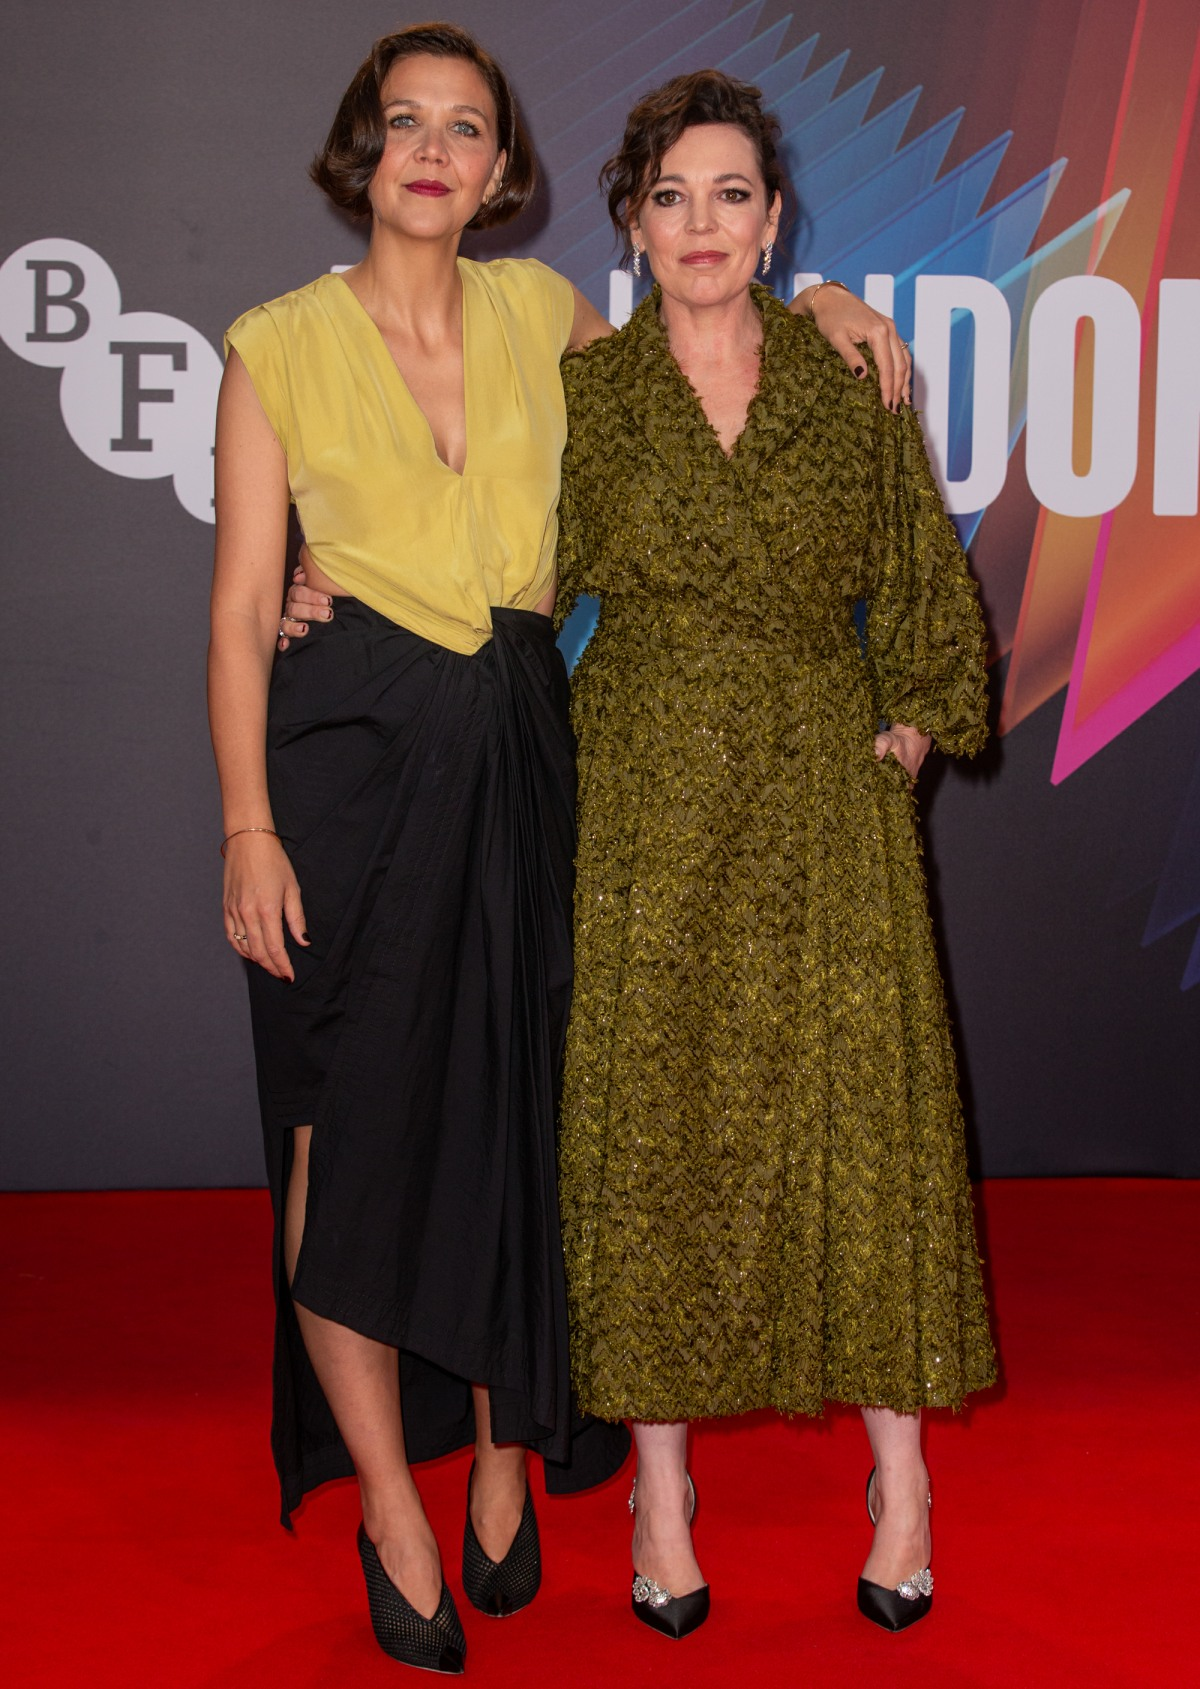 The BFI 65th London Film Festival UK Premiere of 'The Lost Daughter' held at the Royal Festival Hall